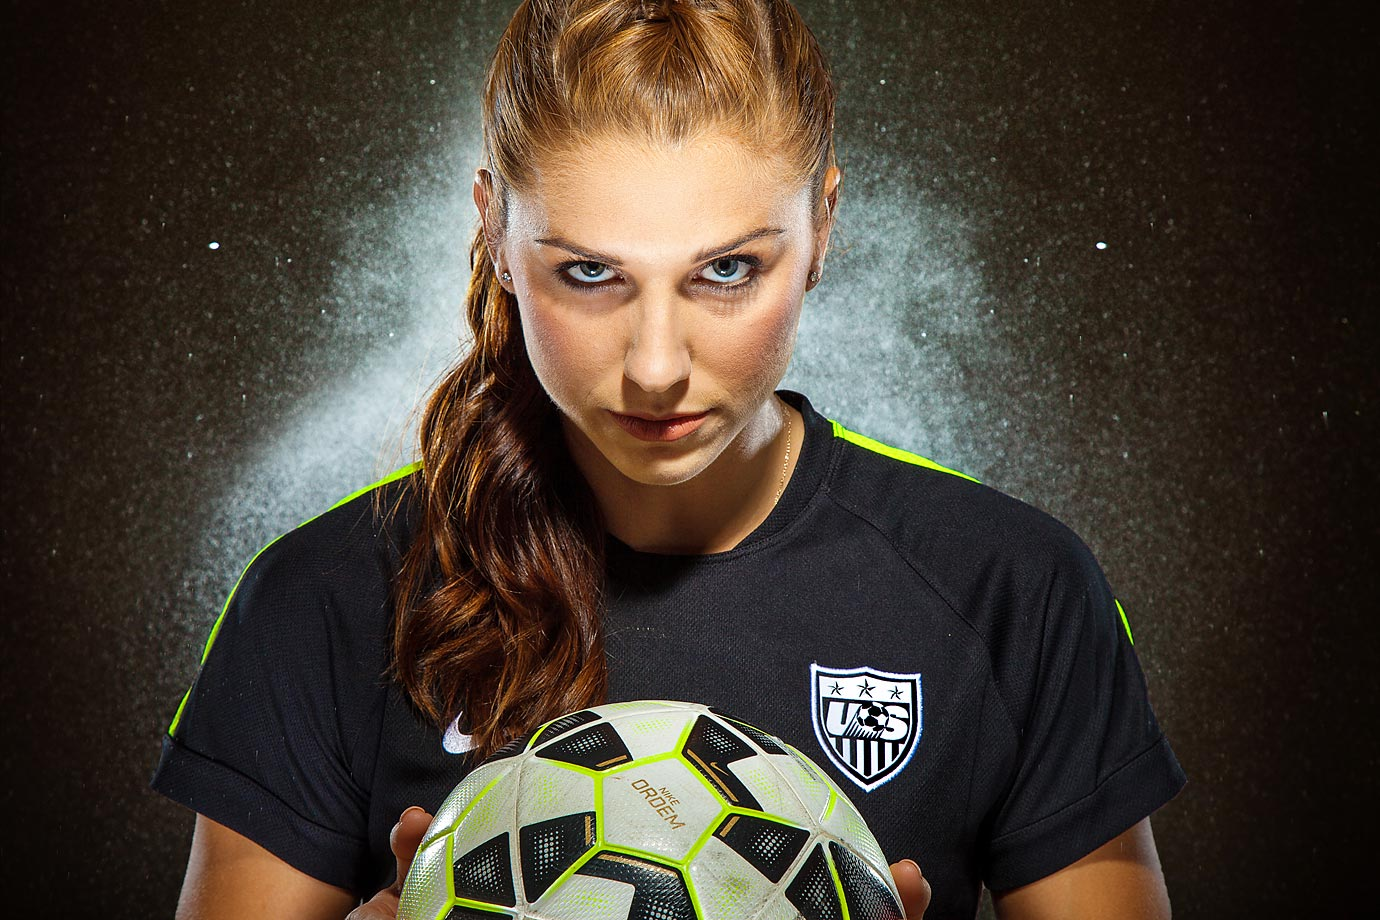 Facebook Wallpaper Quotes From Soccer Players Alex Morgan Uswnt Star Is Healthy Sees Opportunity In